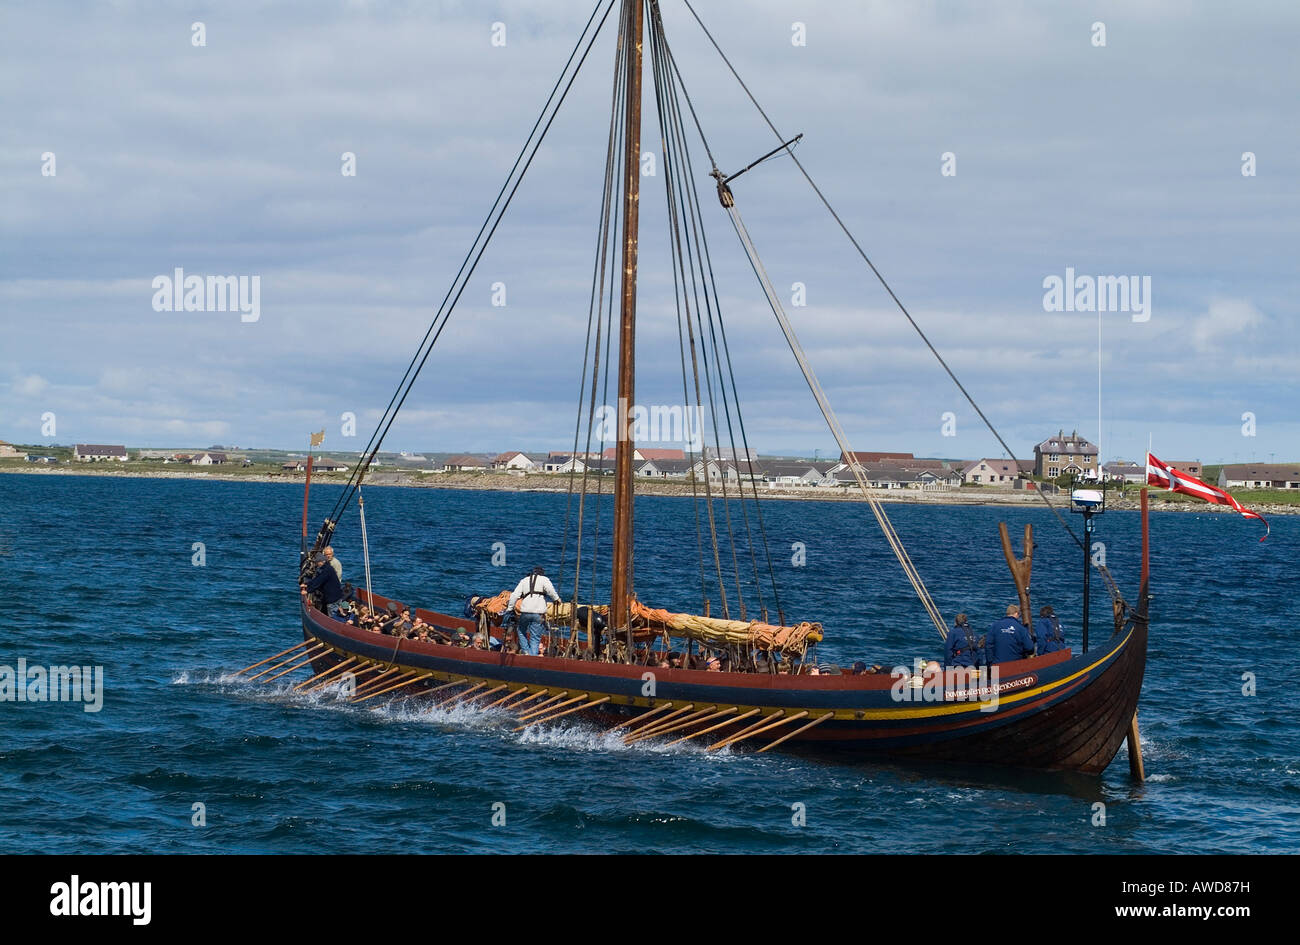 dh Sea Stallion KIRKWALL BAY ORKNEY Longship Havhingsten fra Glendalough Viking galley oar long boat ship - Stock Image